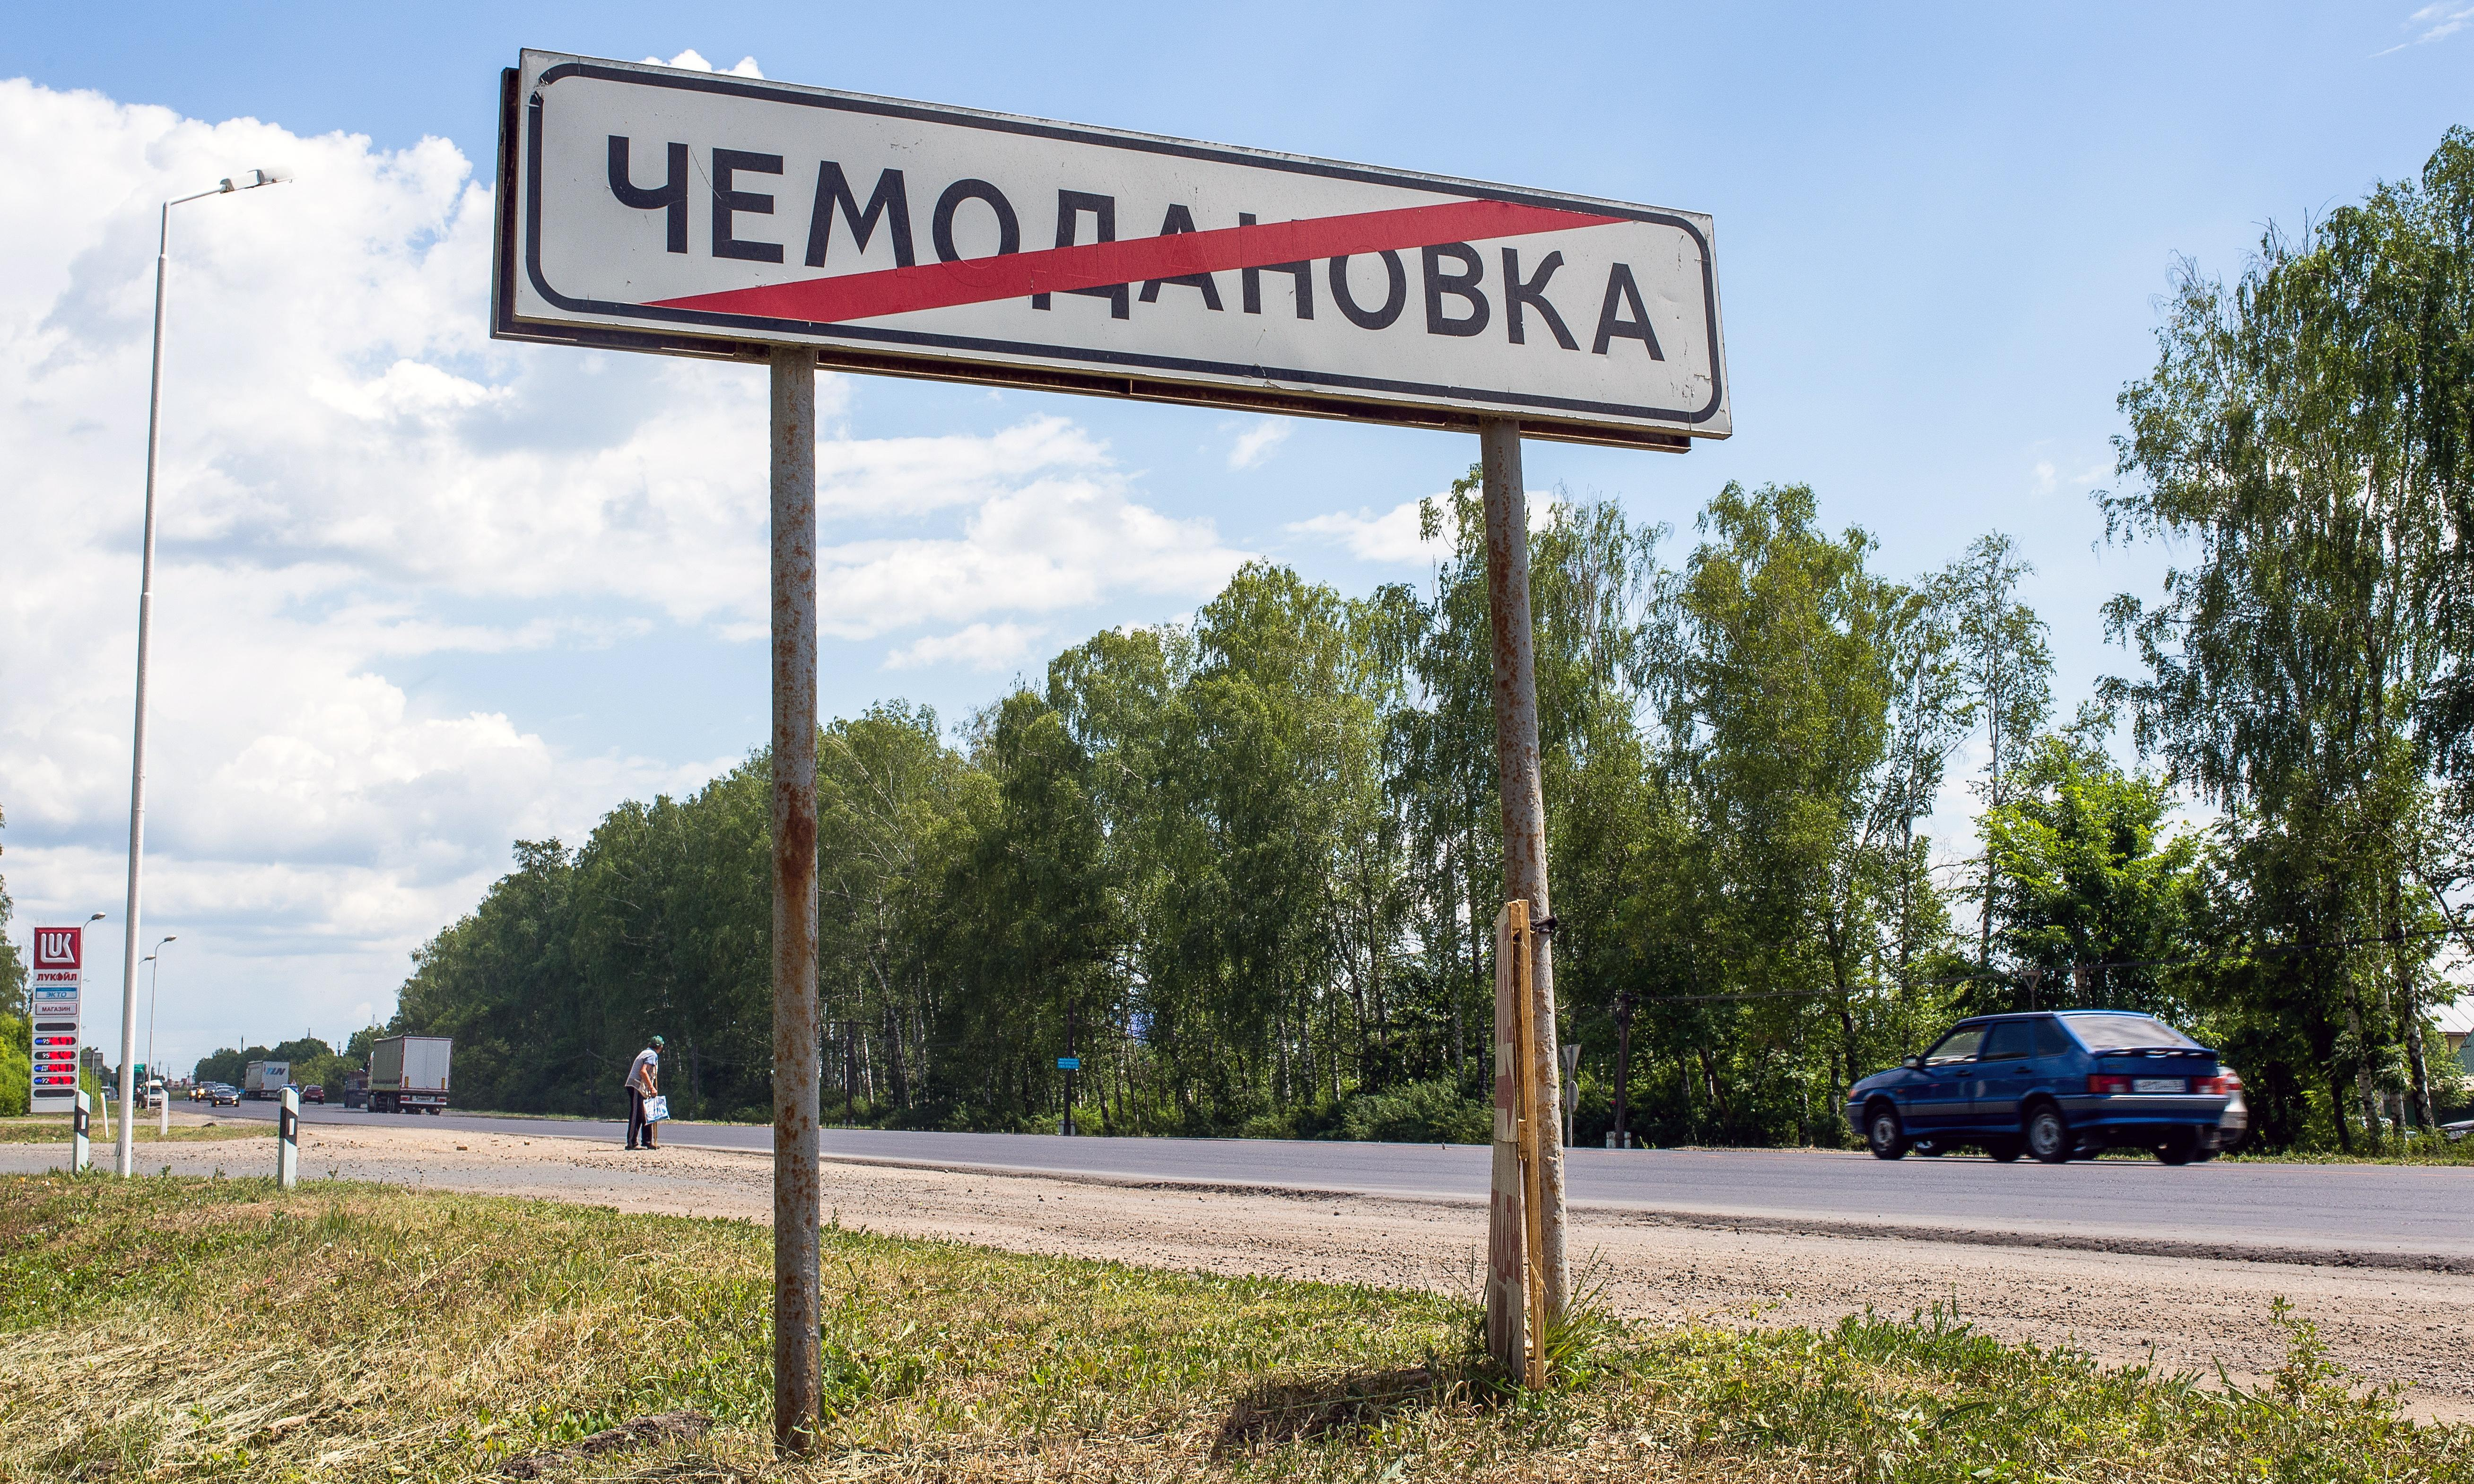 Hundreds of Roma 'forcibly removed' from Russian village